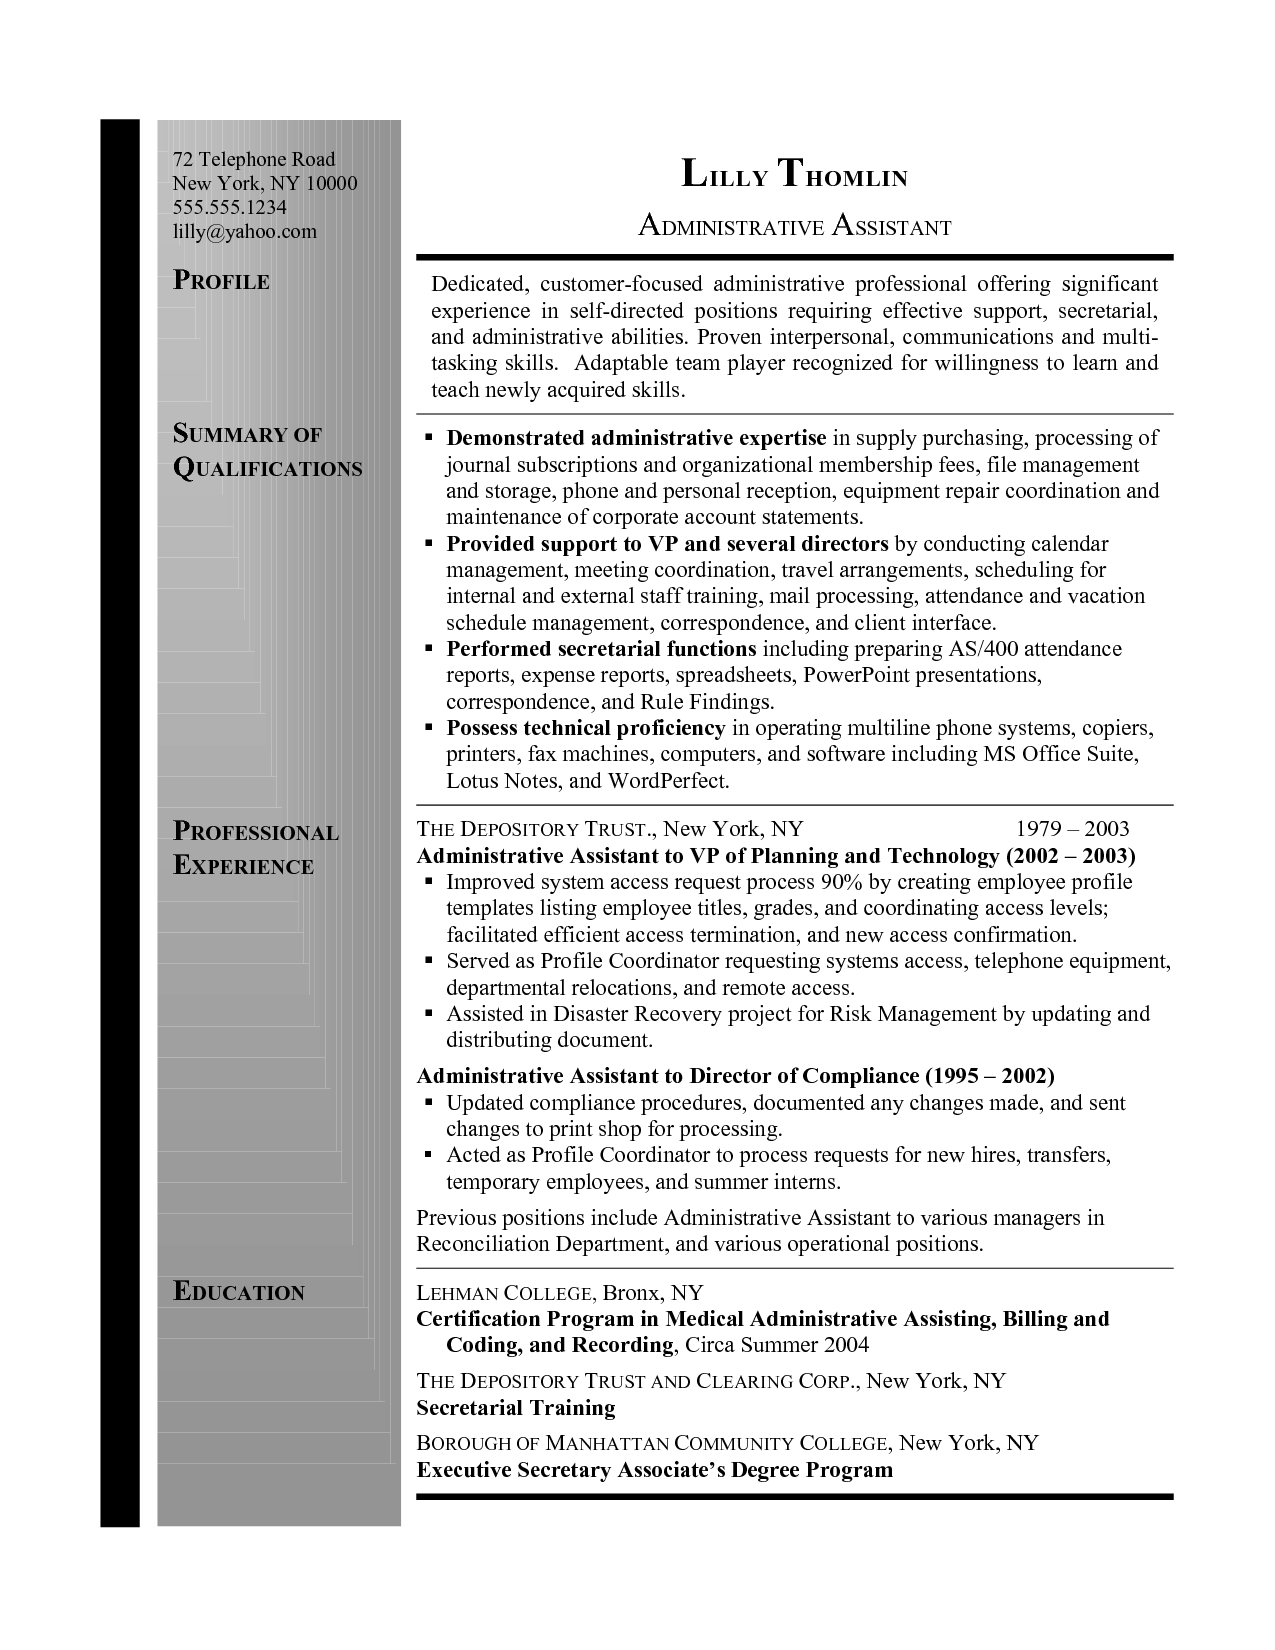 Secretary Resume Templates Resume Summary Administrative Assistant  Resume Info  Pinterest